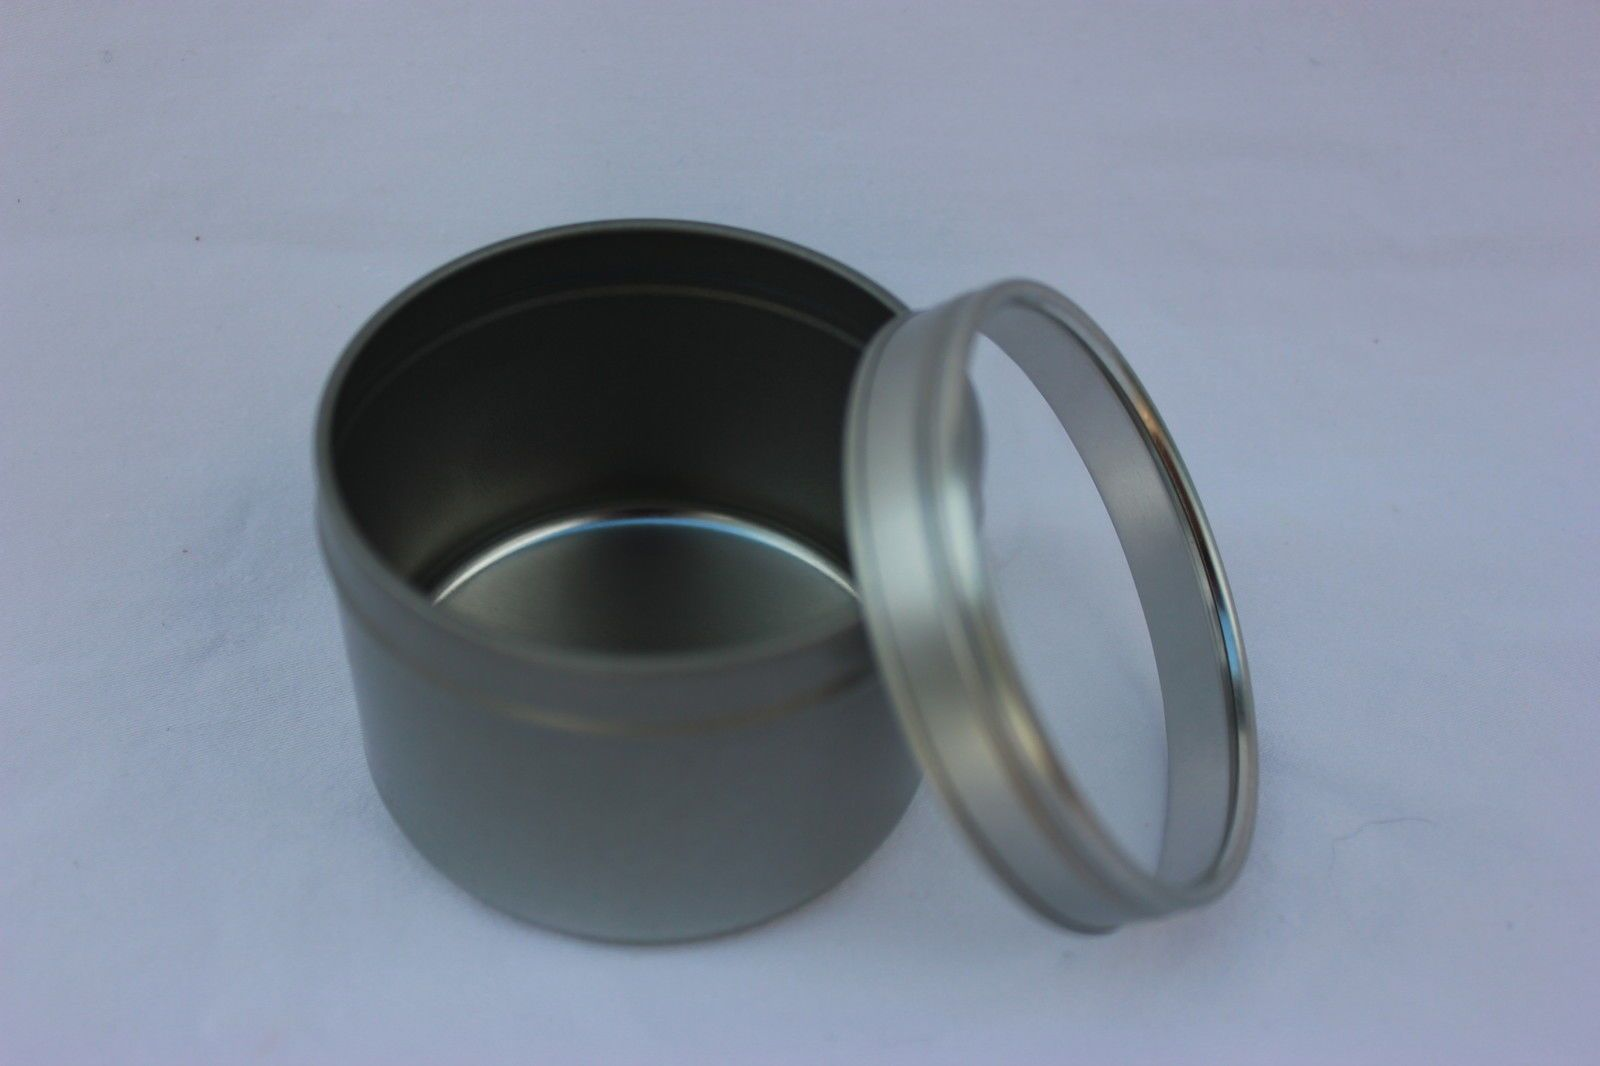 8oz Round Deep Tin Containers Twist Lug Lids  12  NEW  Candles Spices Beads